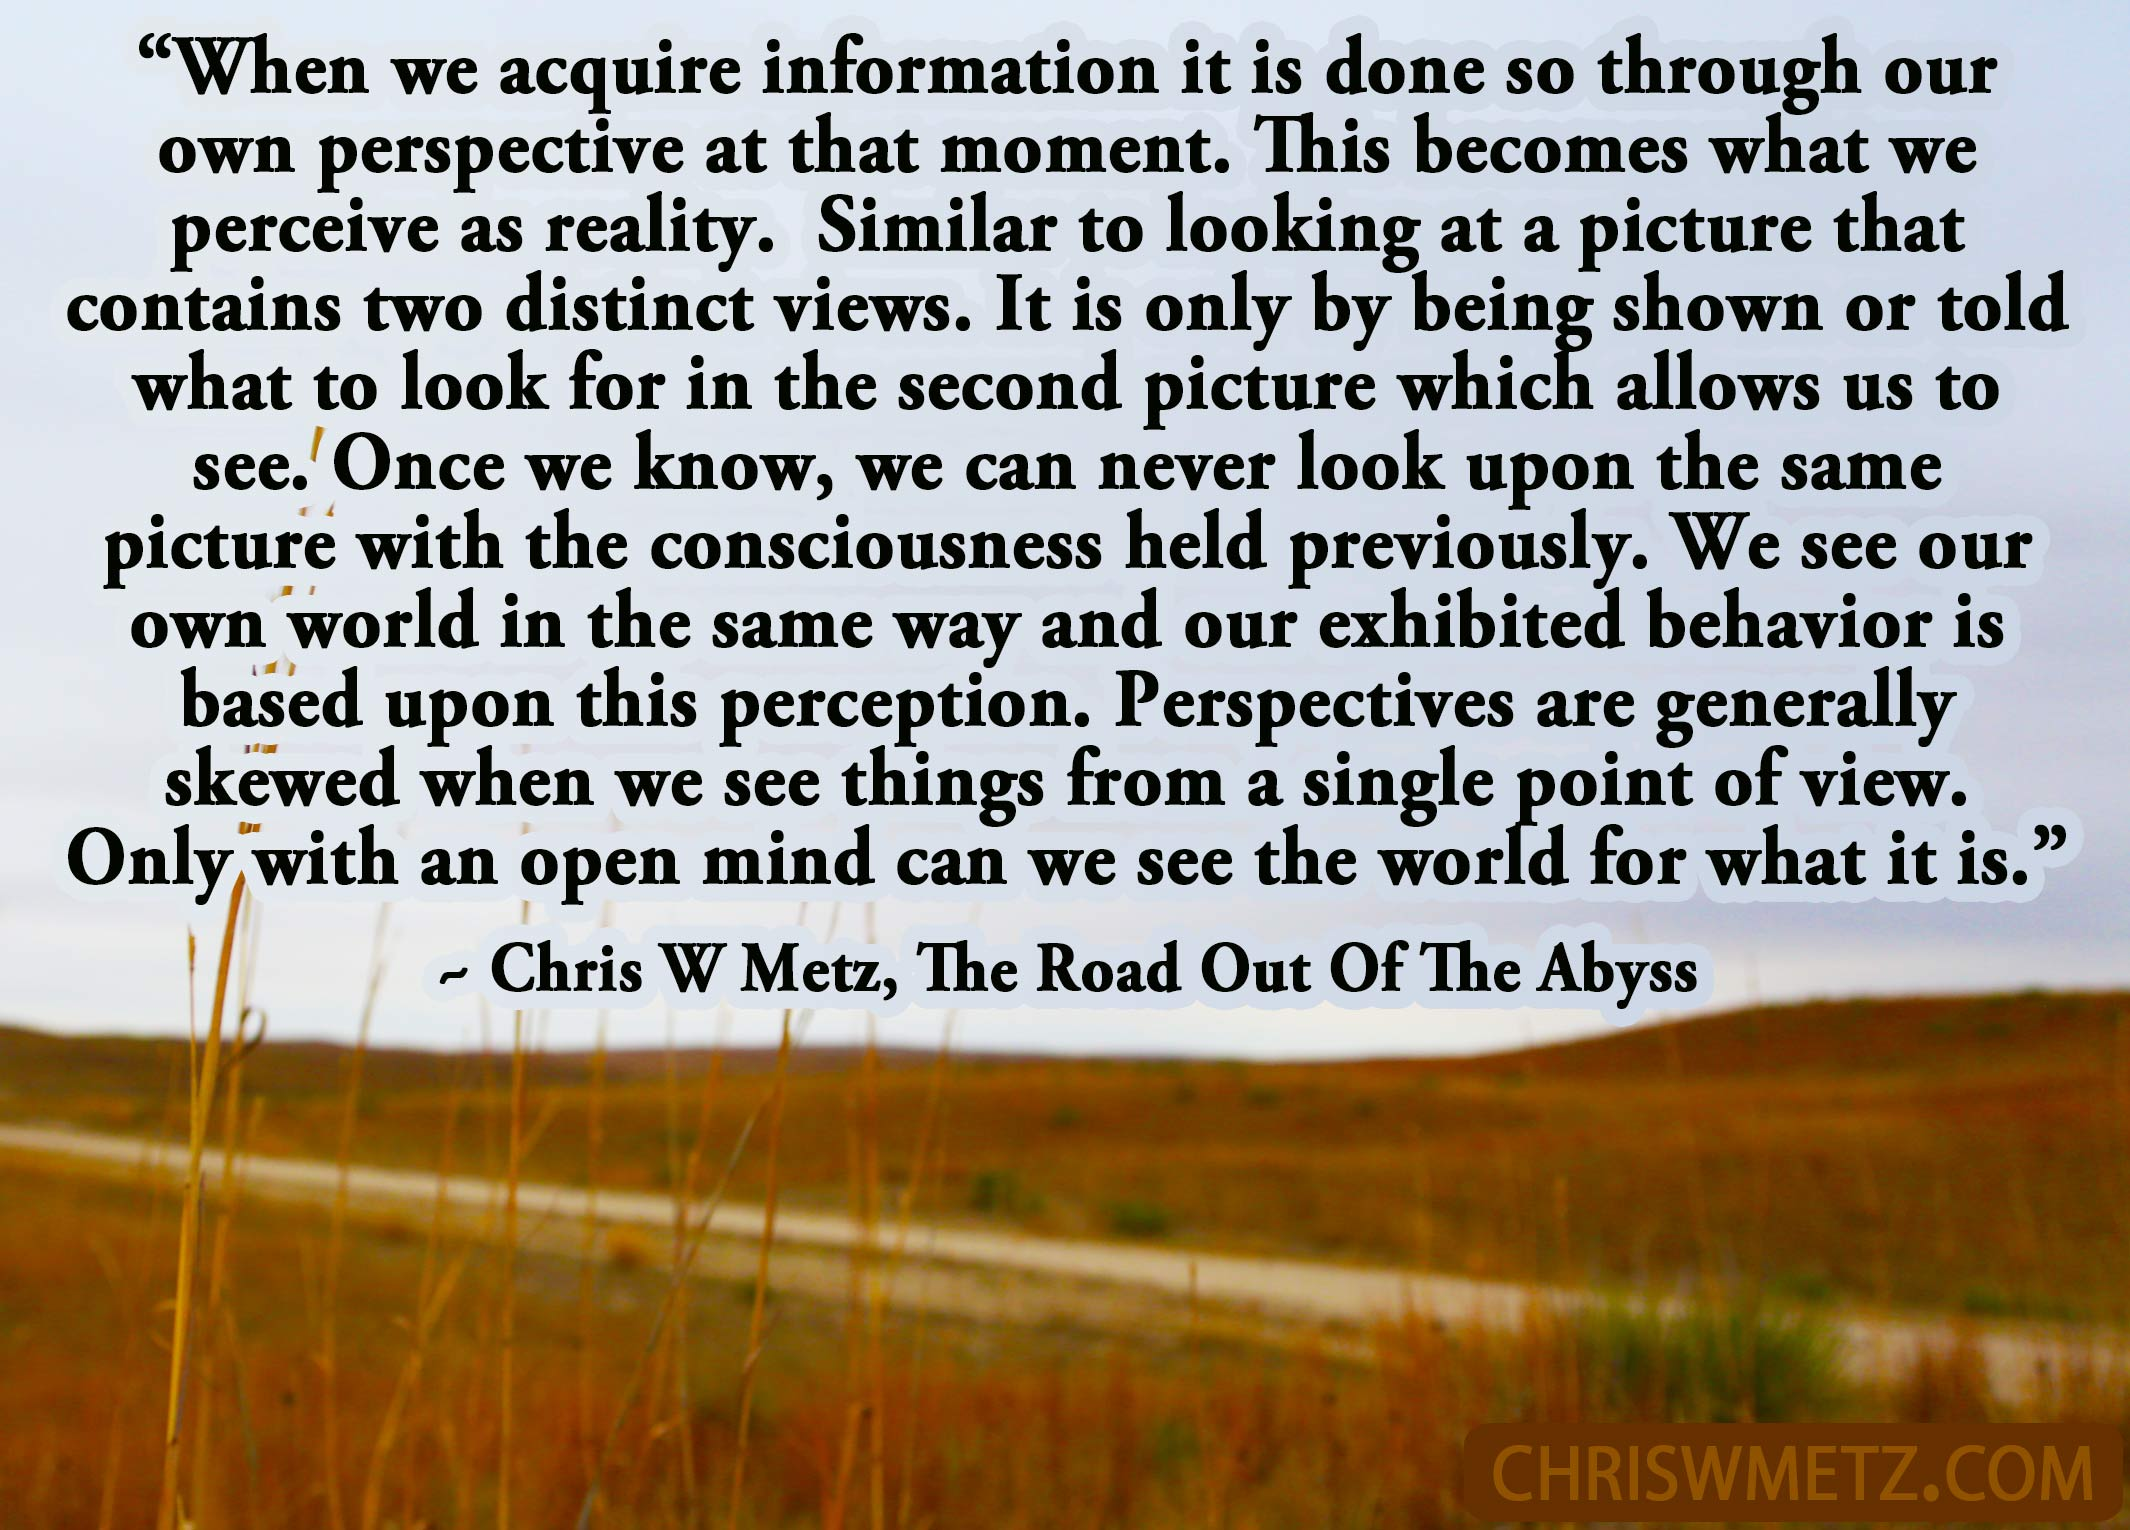 self awareness quote 16 chris w metz the road out of the abyss